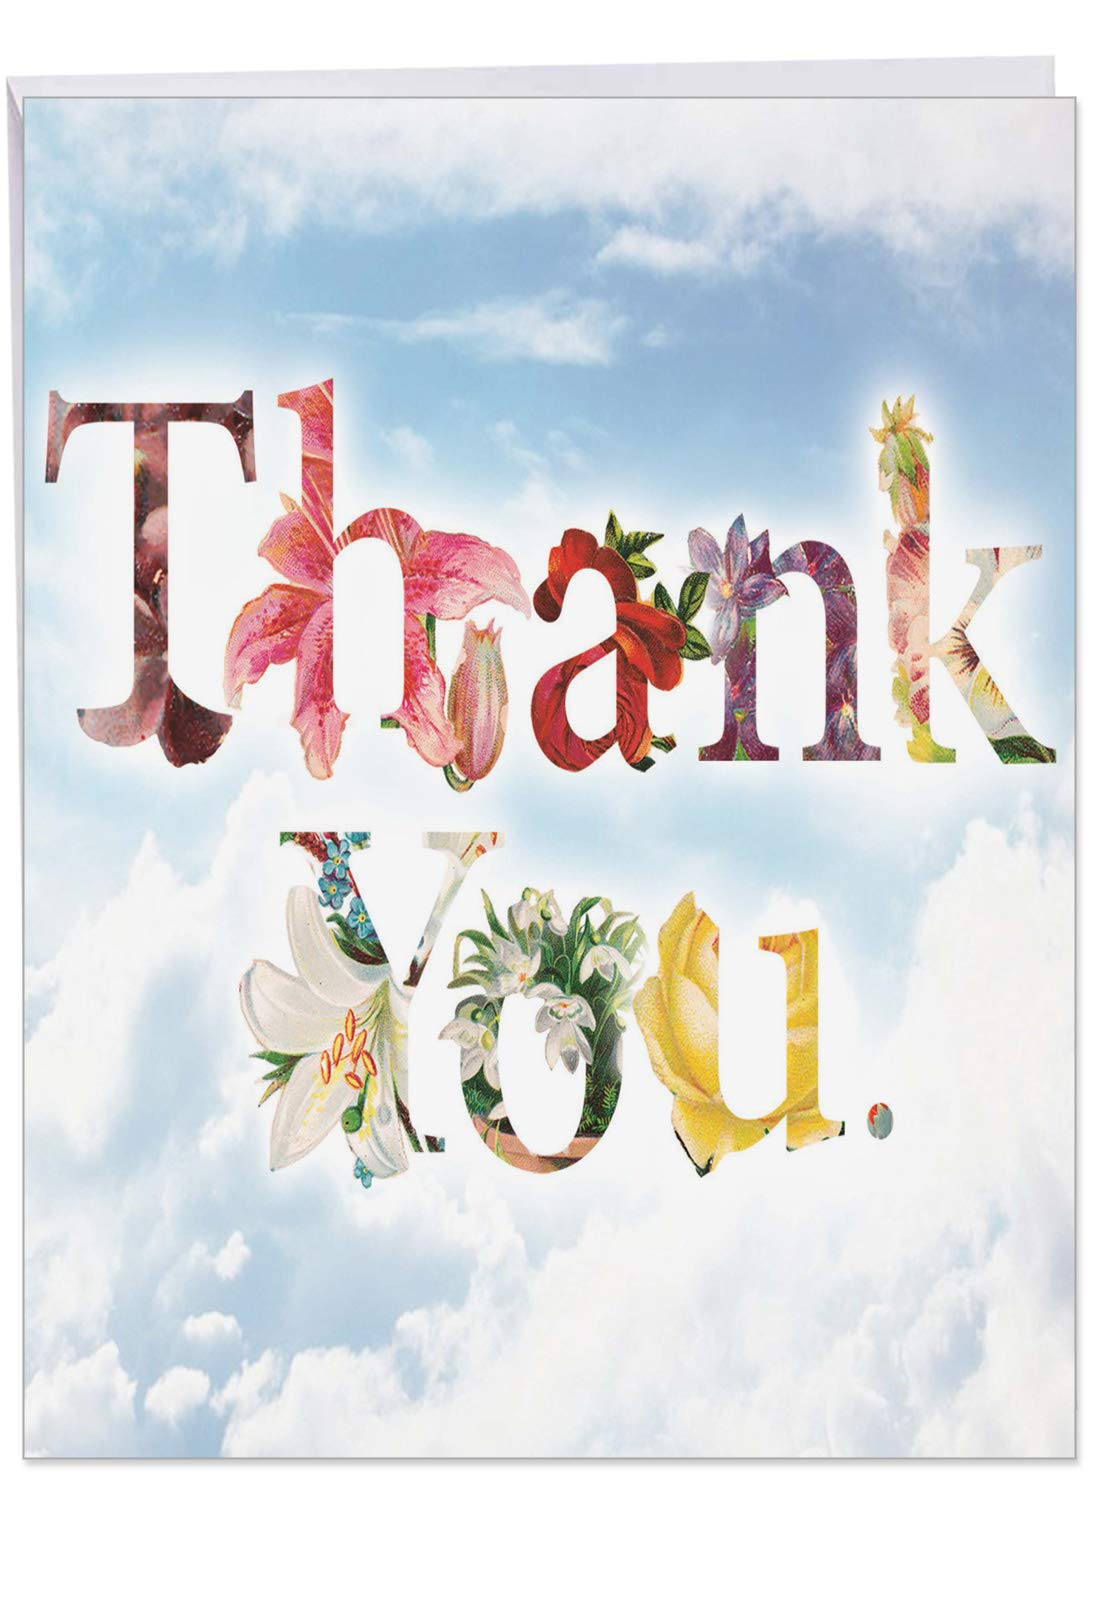 Thanks a Bunch - Big Thank You Card with Envelope (Extra Large 8.5 x 11 Inch) - Elegant Flower Font Appreciation Card for Friends and Family - Simply Beautiful Stationery Notecard J2359ATYG